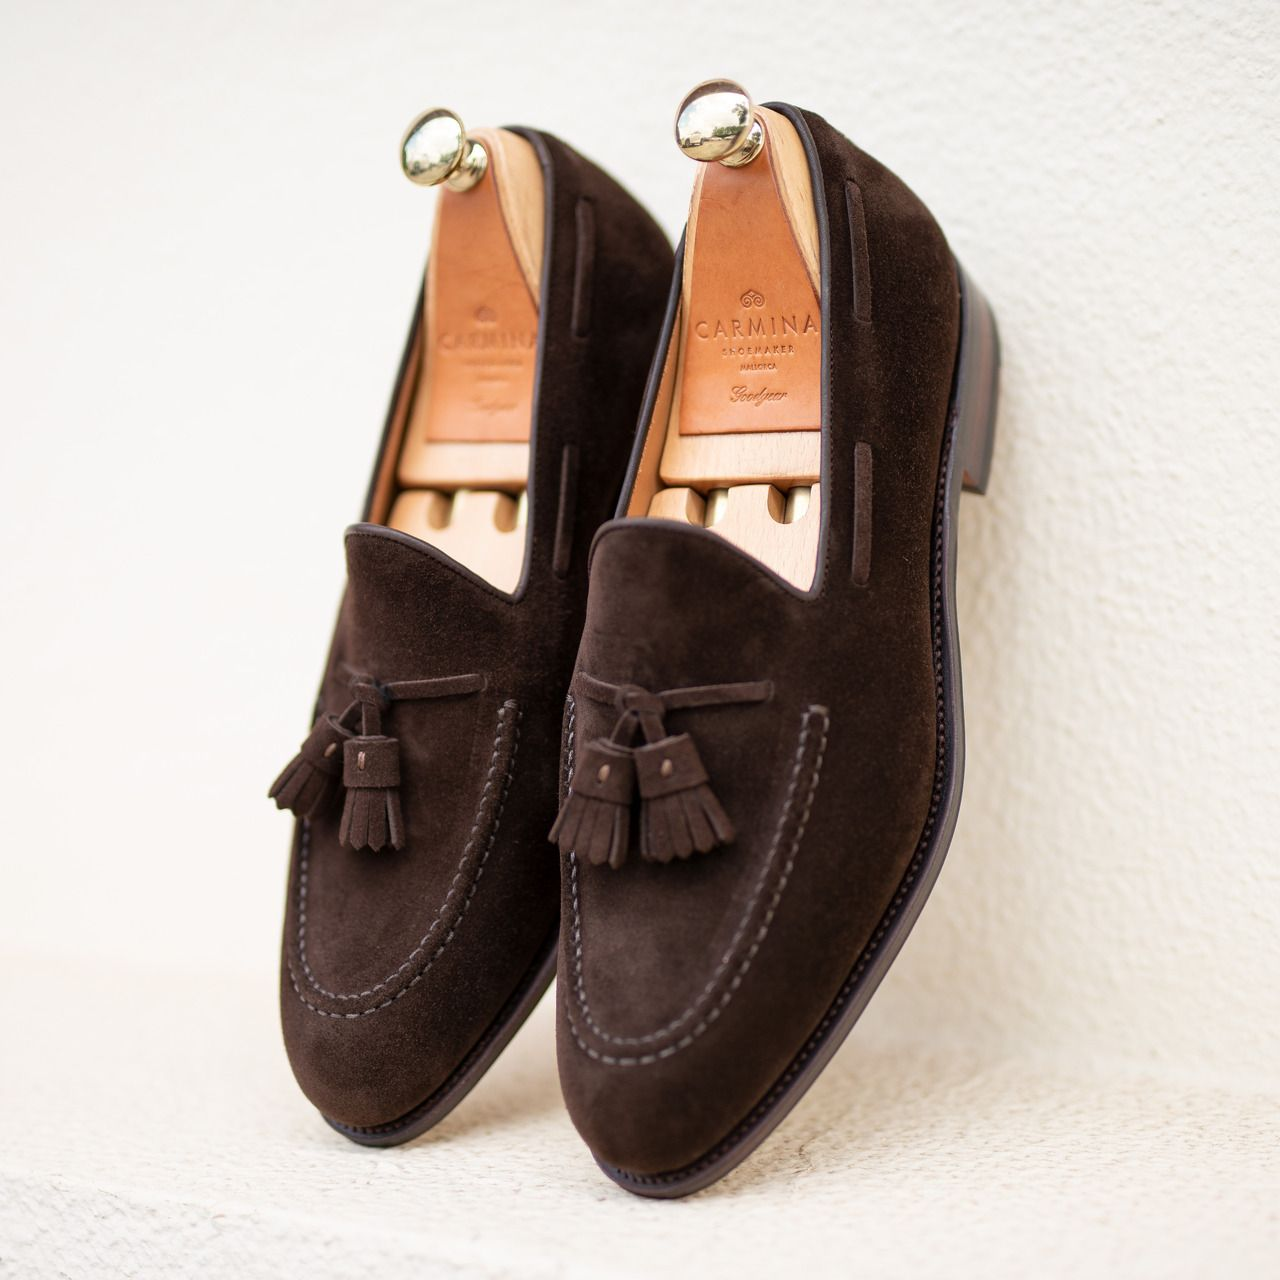 Tassel Loafers Outfit Idéer